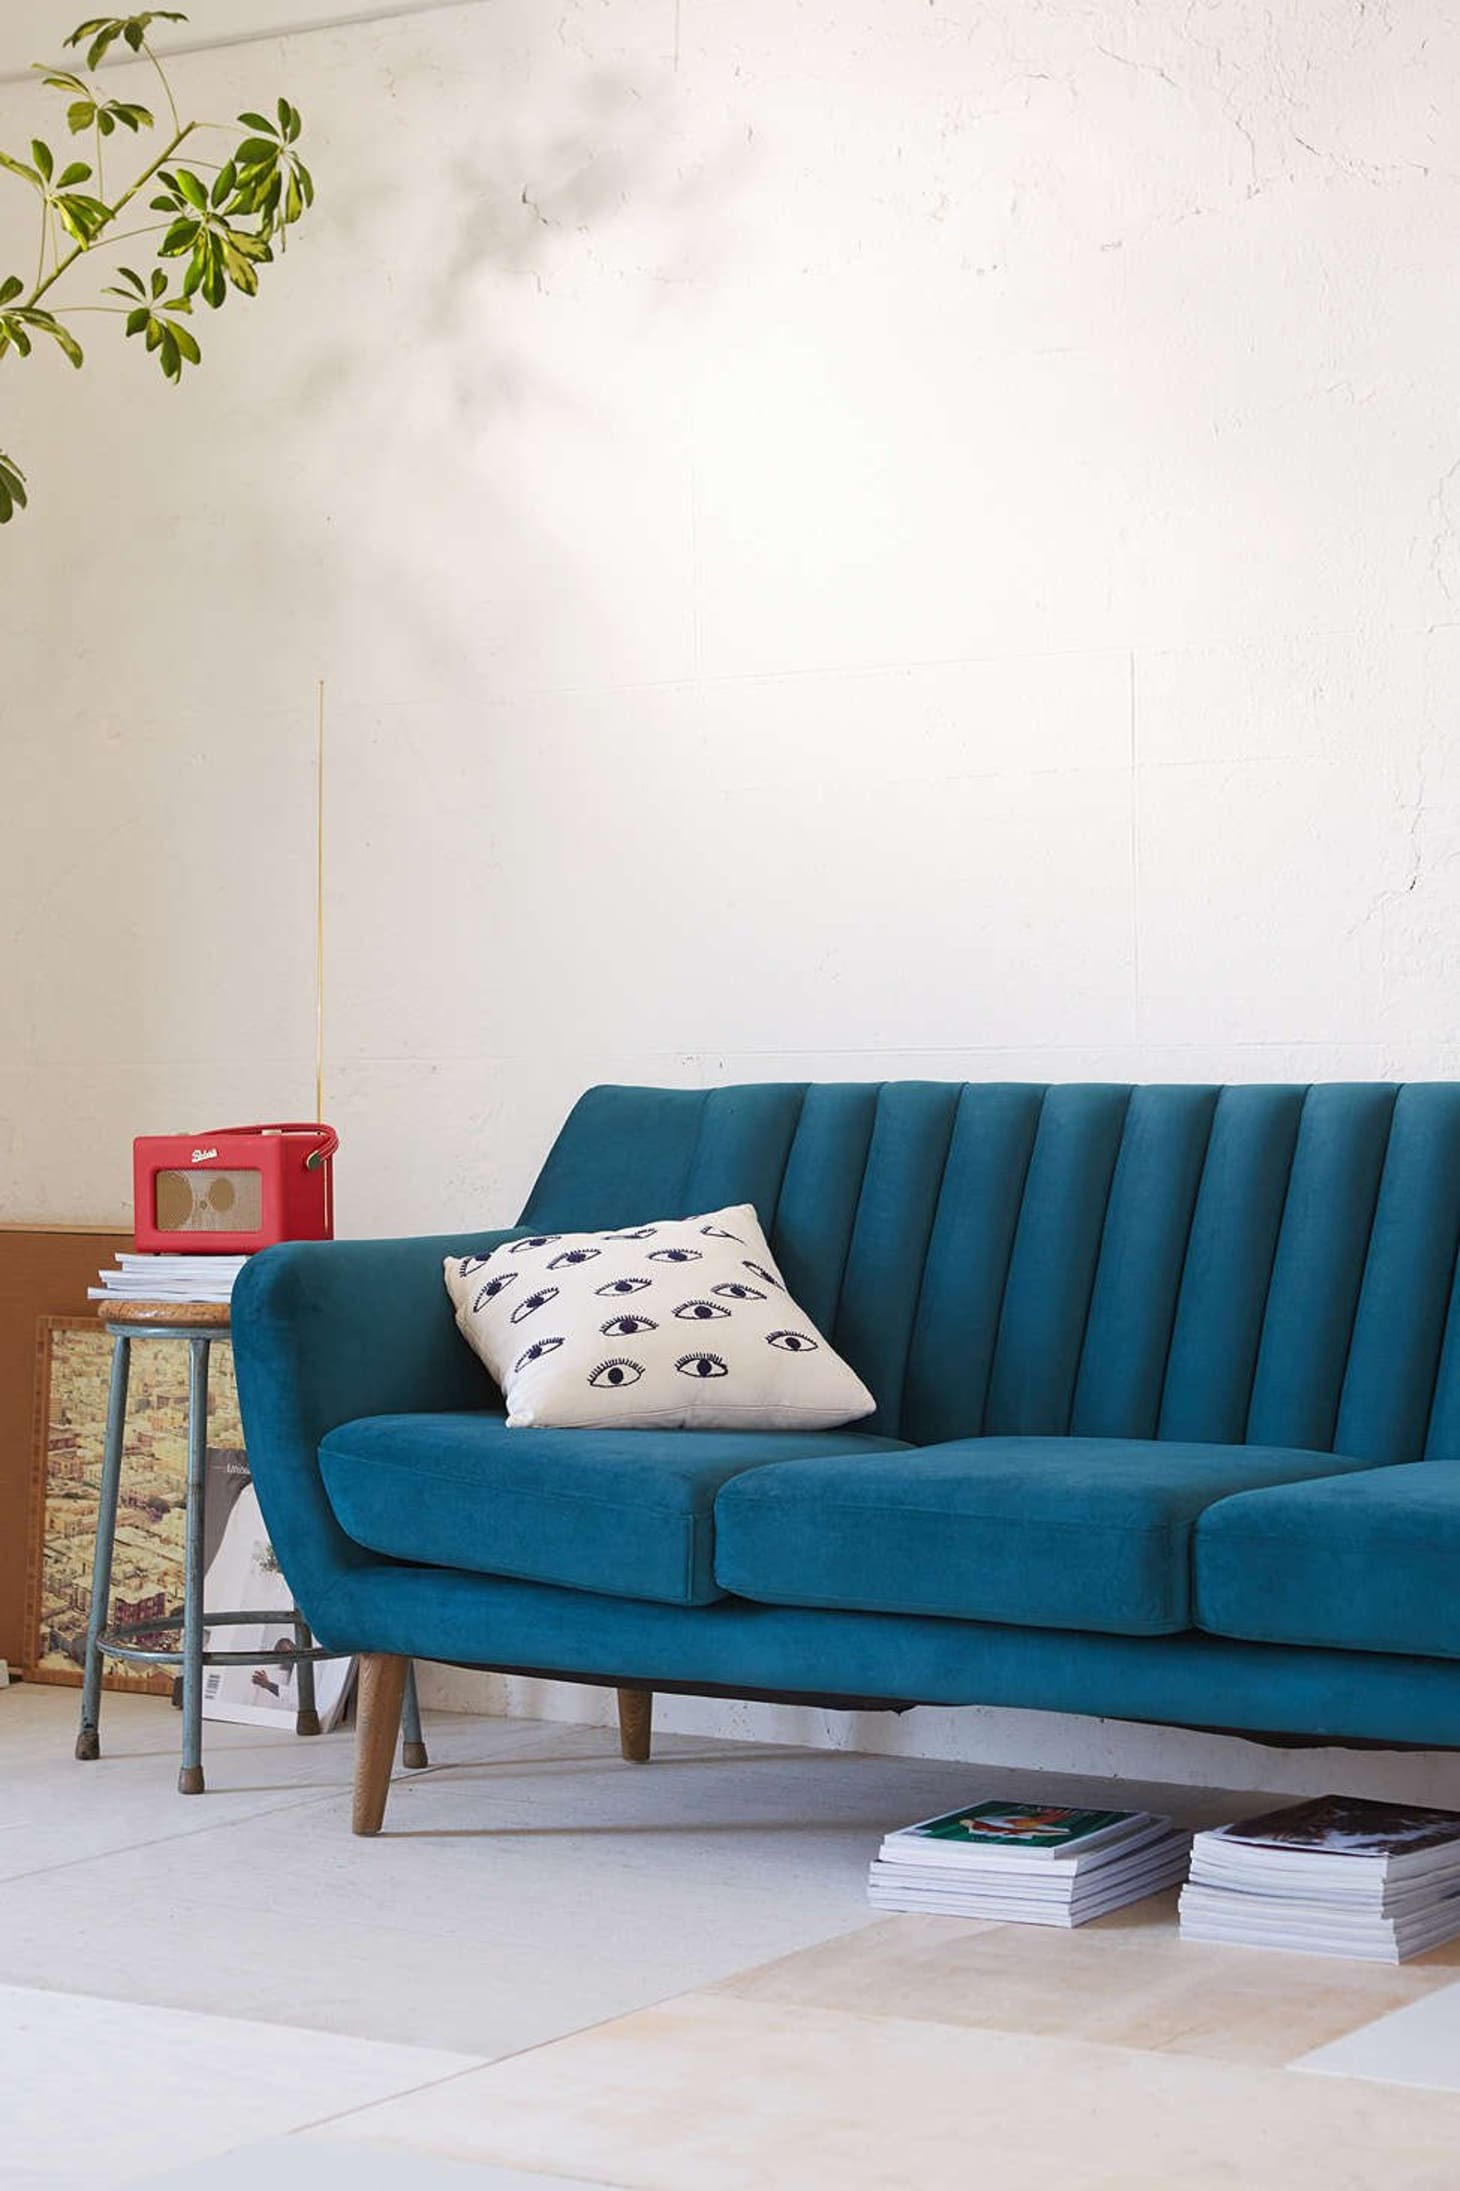 Pleasing 9 Ways To Add Storage Using The Area Under Your Sofa Ncnpc Chair Design For Home Ncnpcorg